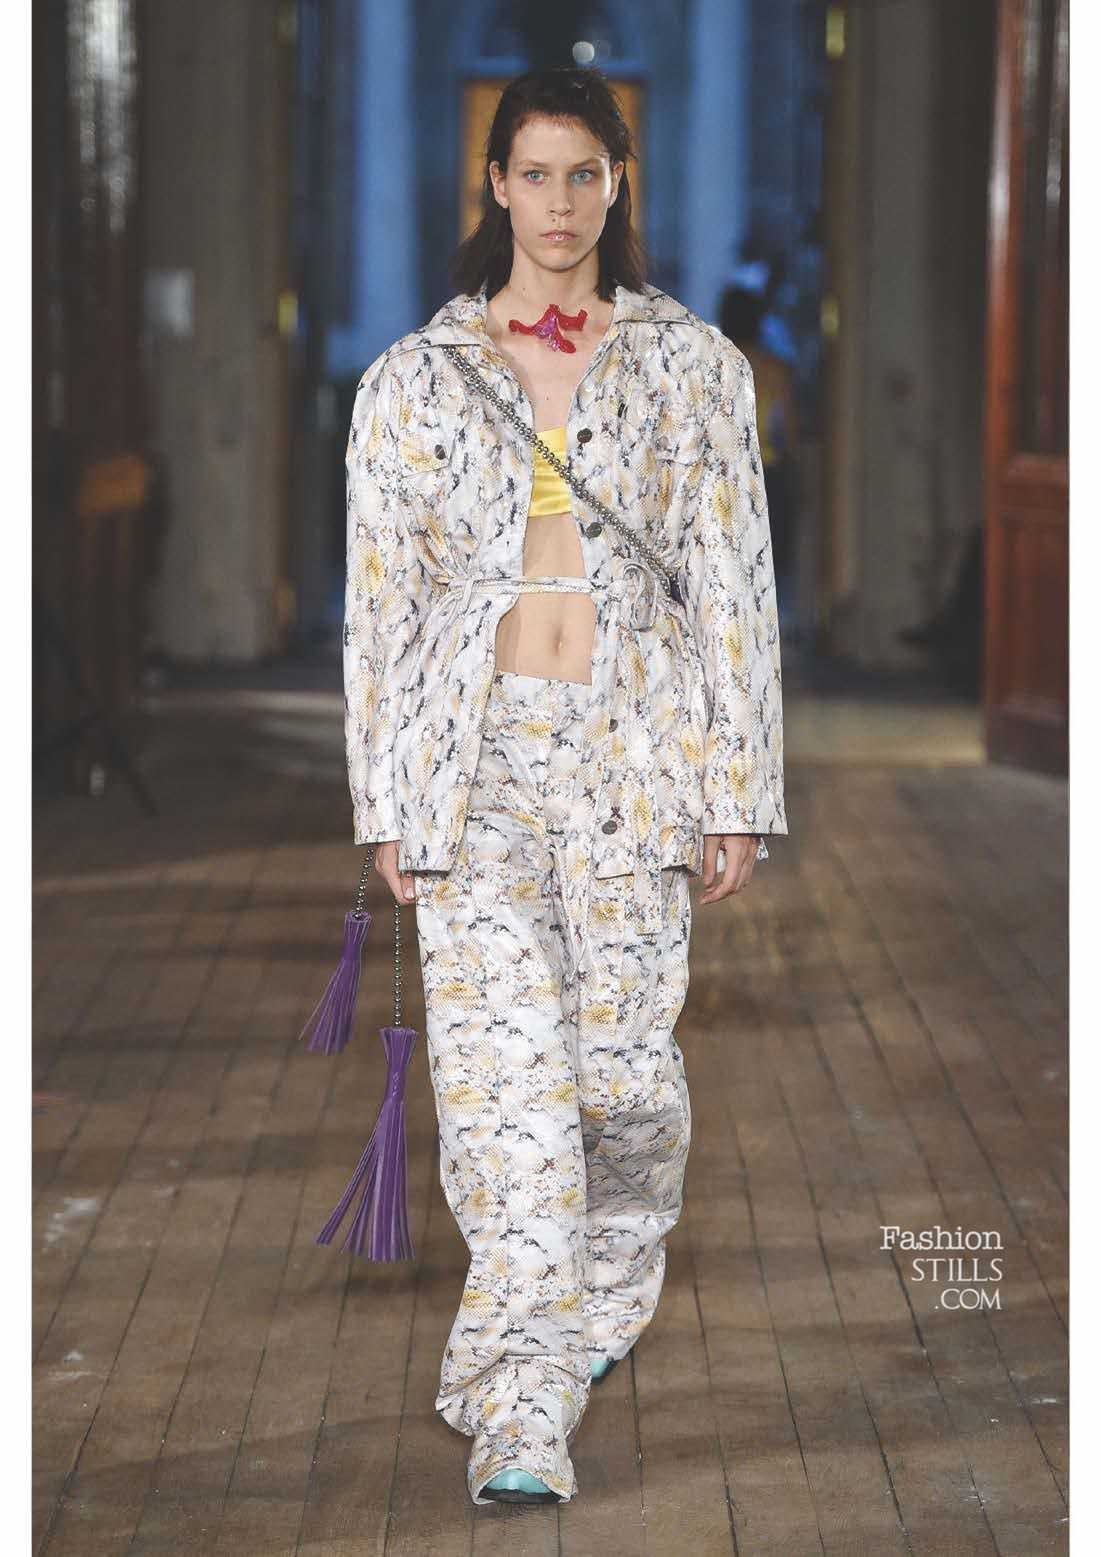 Neith Nyer_1513681575_5e_look-book-_-press-release-ss18-neith-nyer-026.jpg